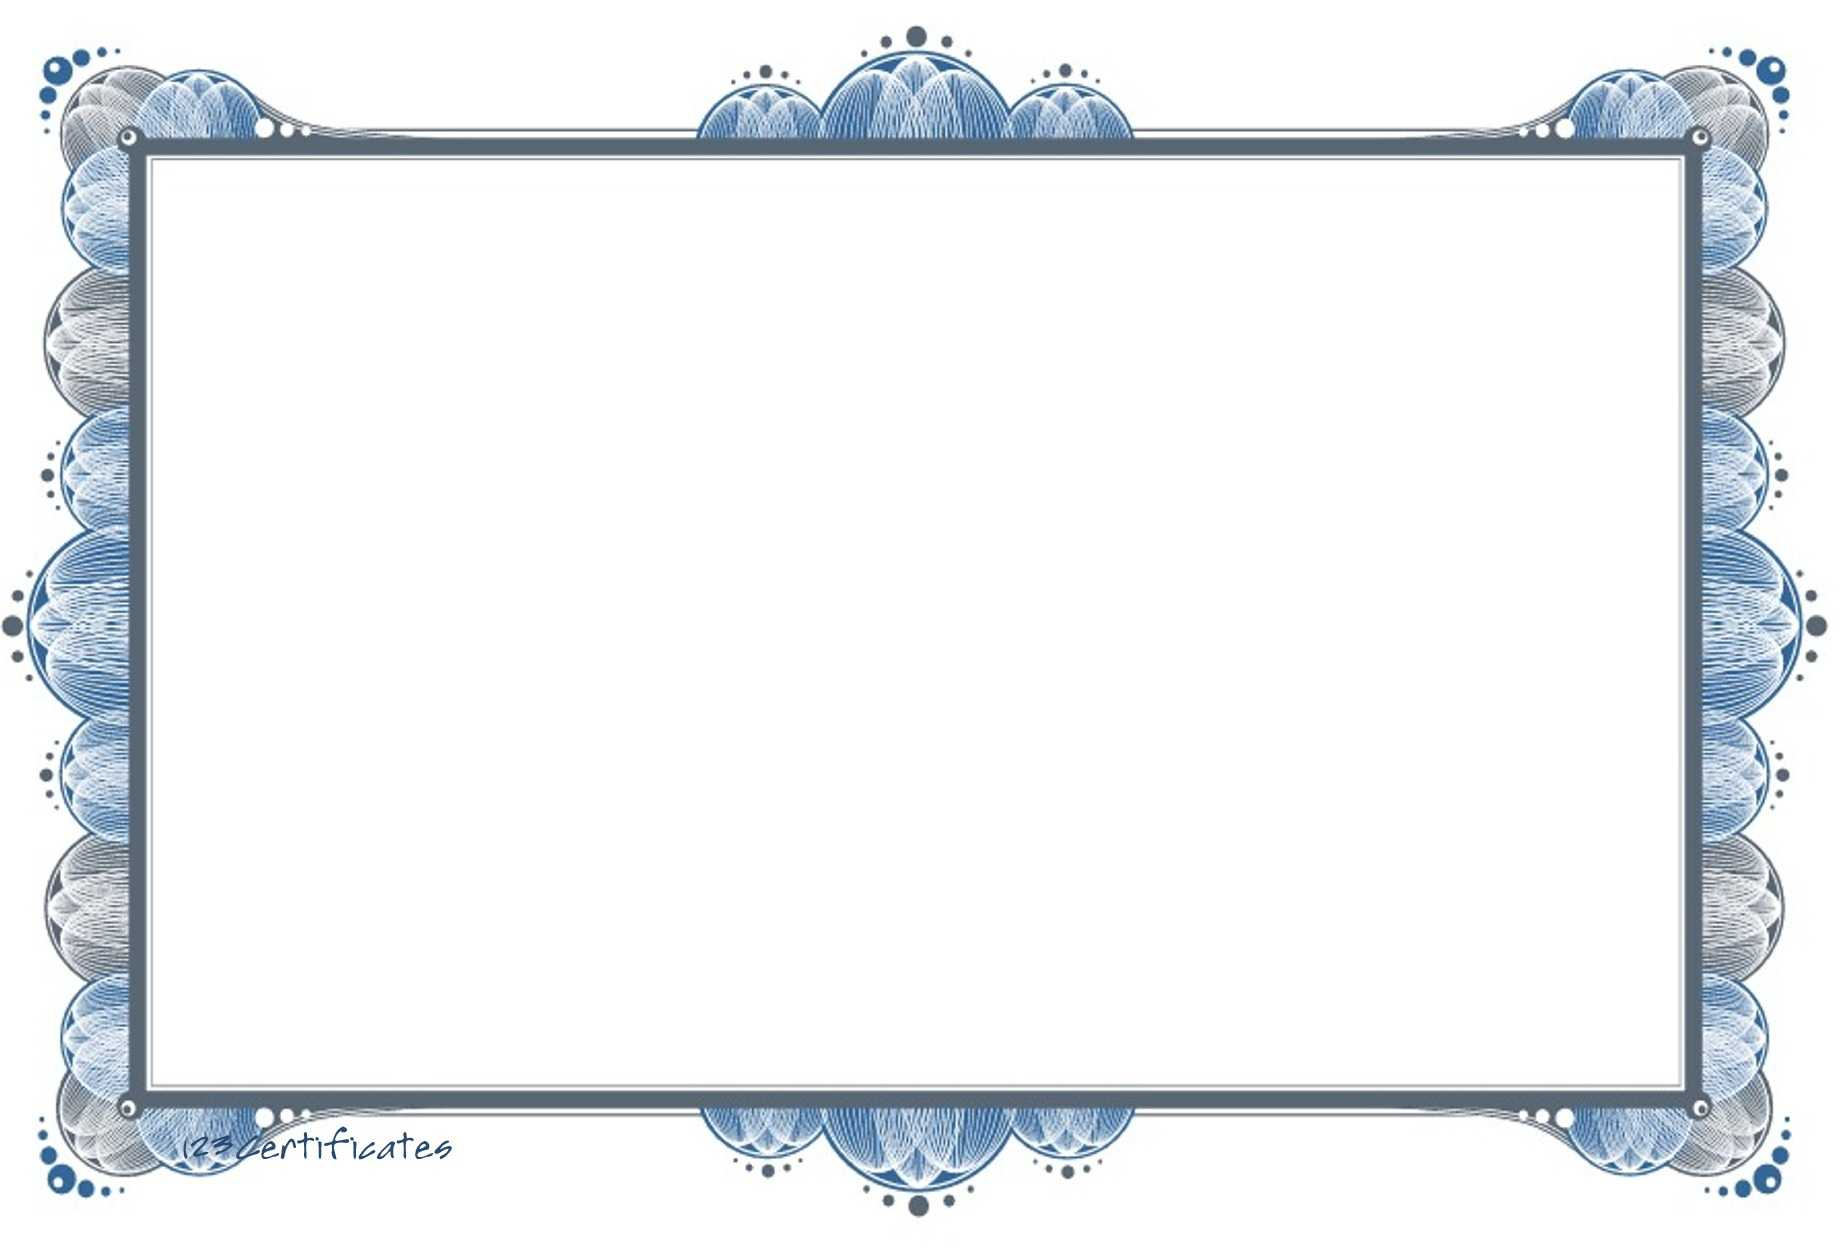 Free Certificate Borders, Download Free Clip Art, Free Clip Inside Certificate Border Design Templates